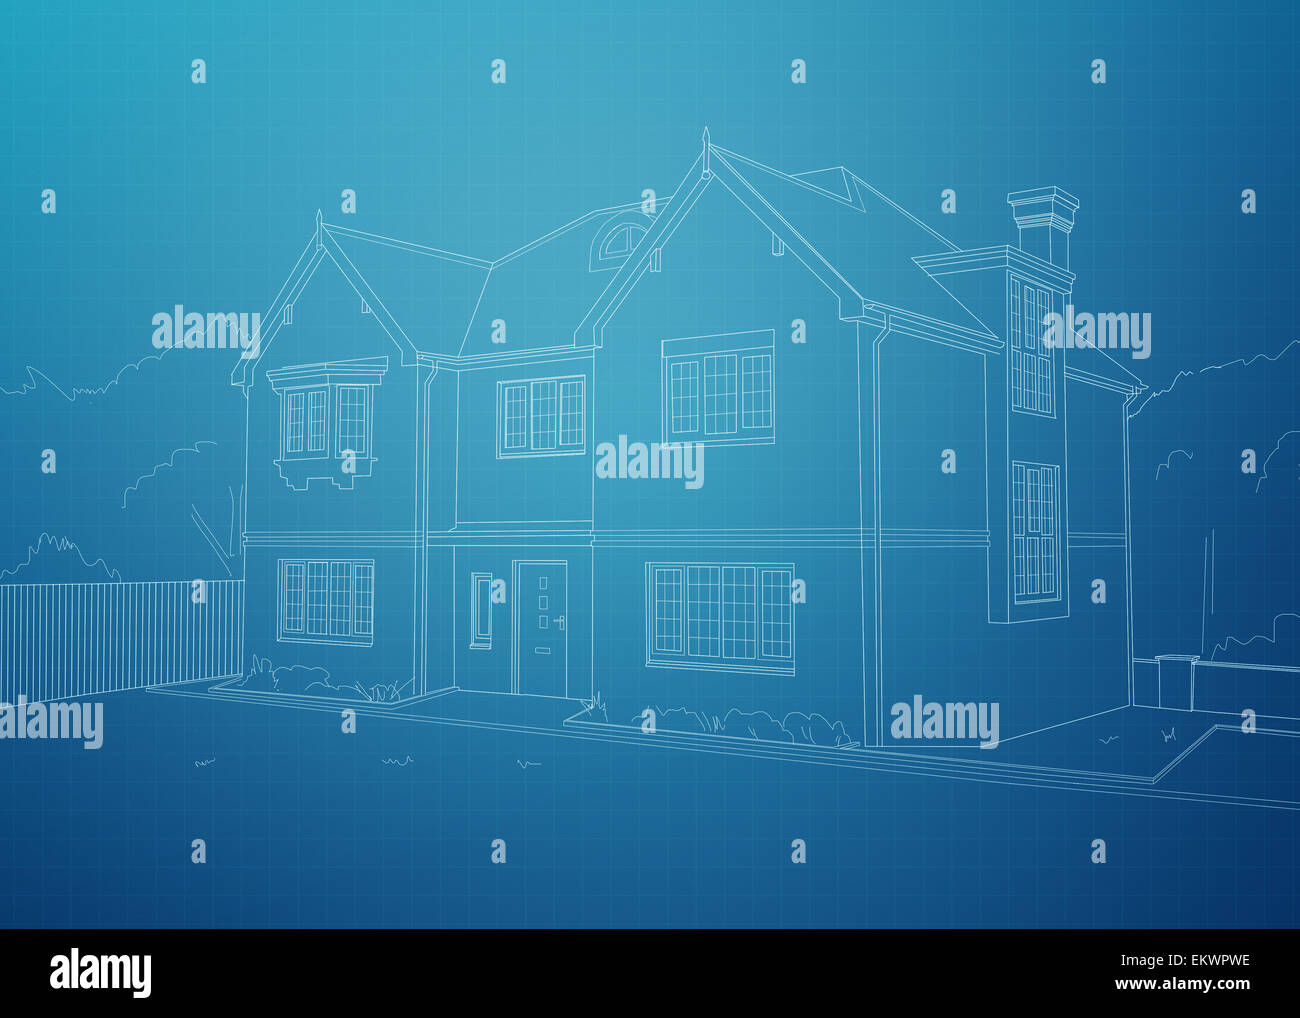 Blueprint background construction house stock photos blueprint modern house blueprint white outline of home on a blue background grid stock malvernweather Image collections